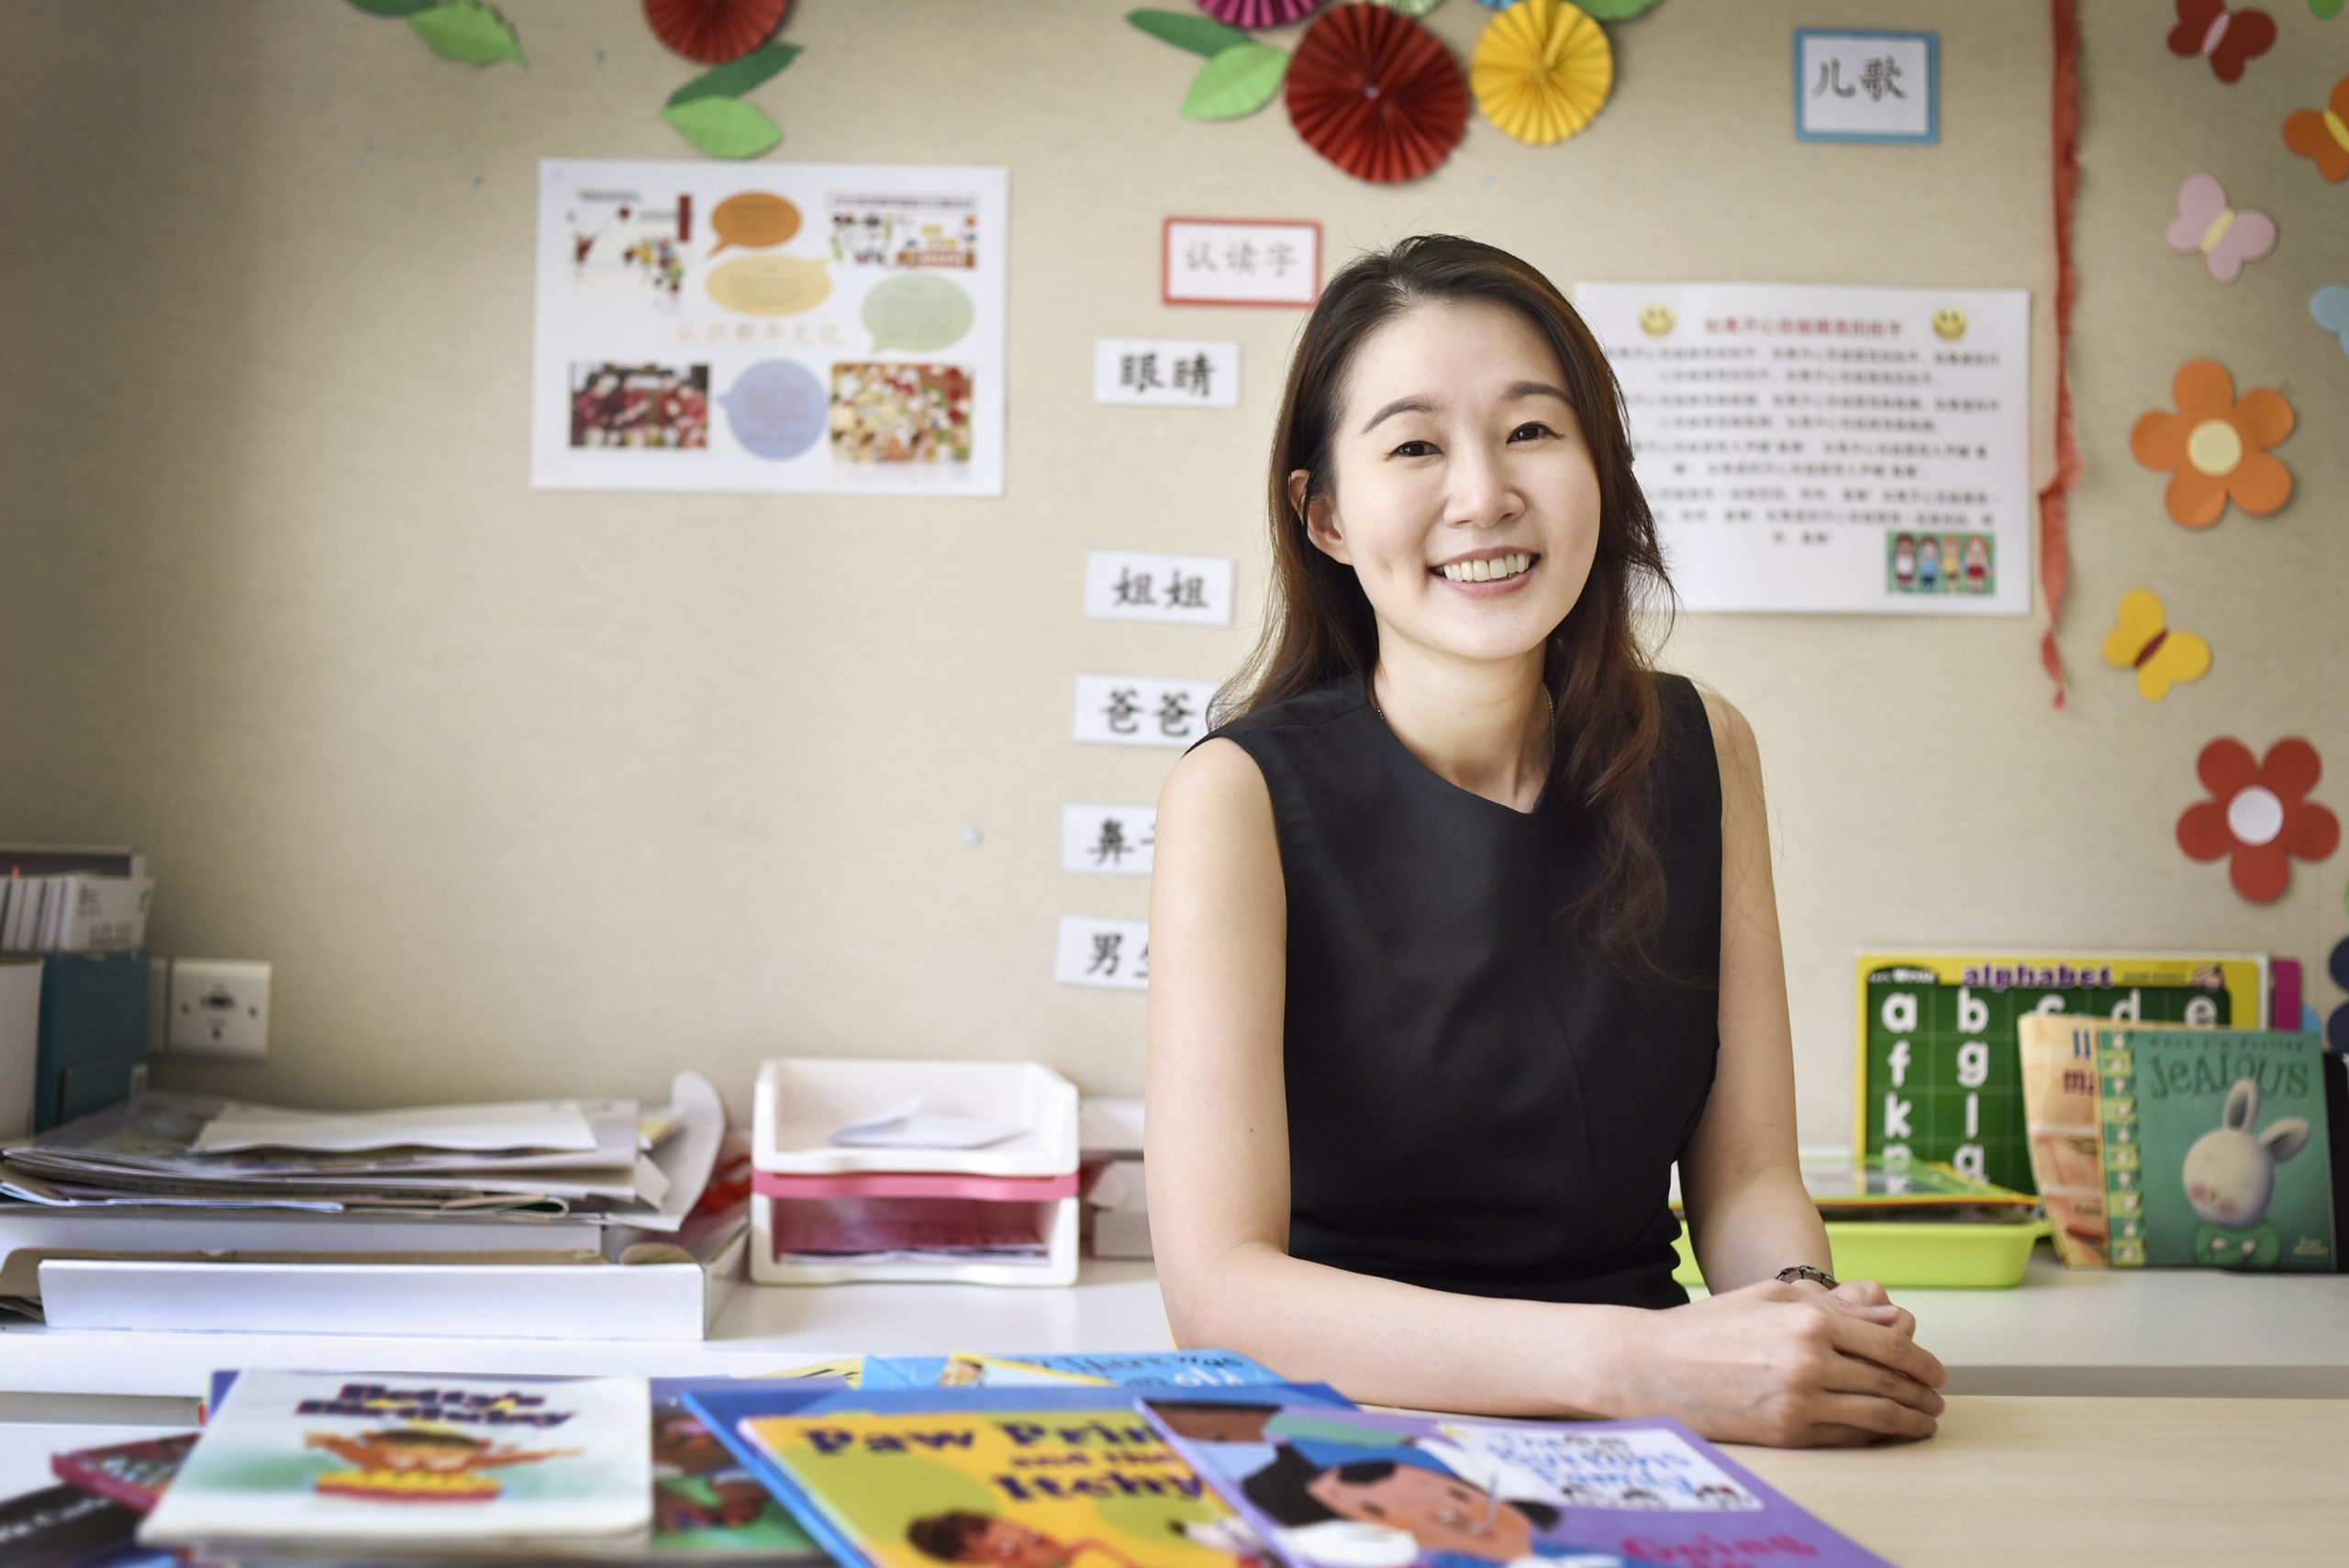 Ms Peng Hai Ying, appointed the CEO of Children's Cancer Foundation (CCF) in June last year, has seen a rise in the number of people who are keen to volunteer with CCF.